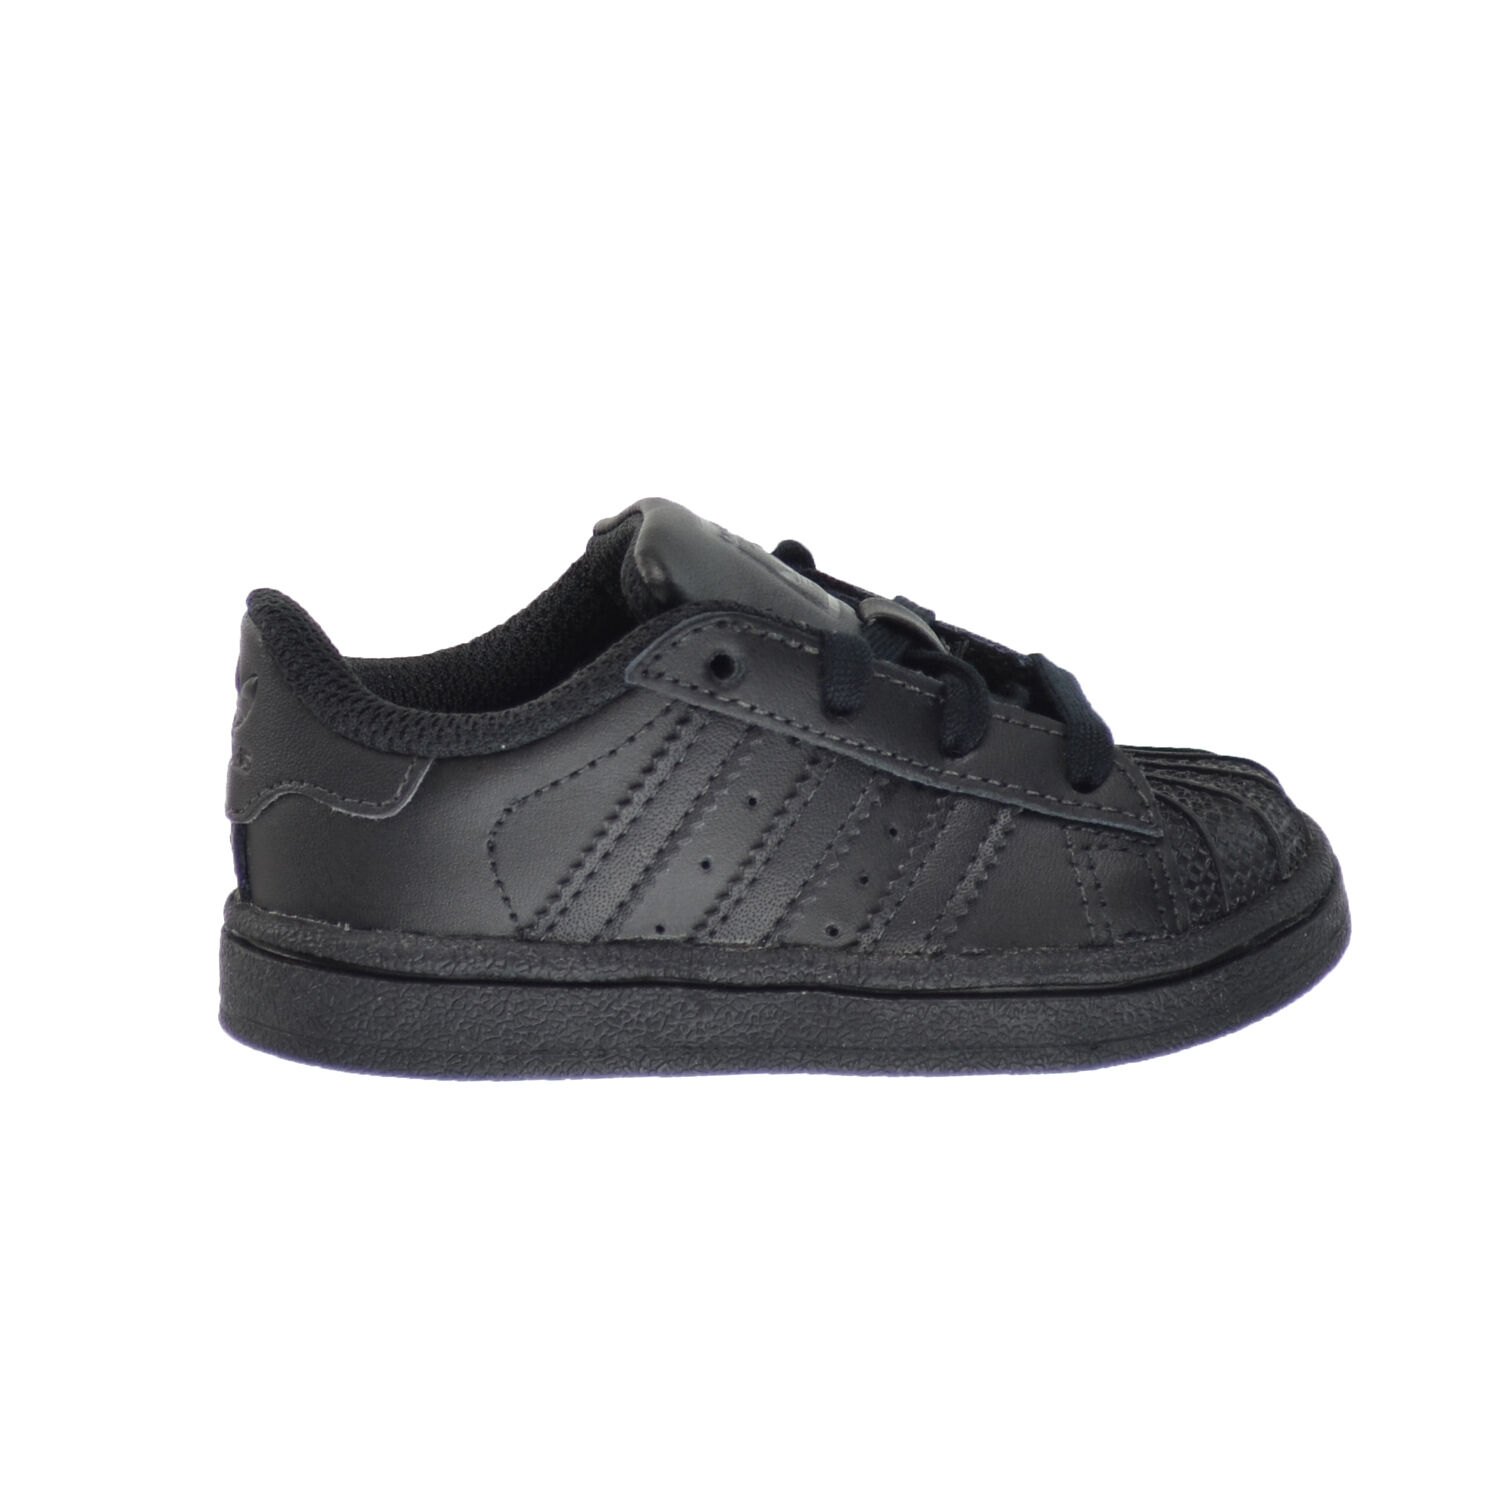 Adidas Superstar I Toddlers/Infants/Baby Shoes Core Black d70188